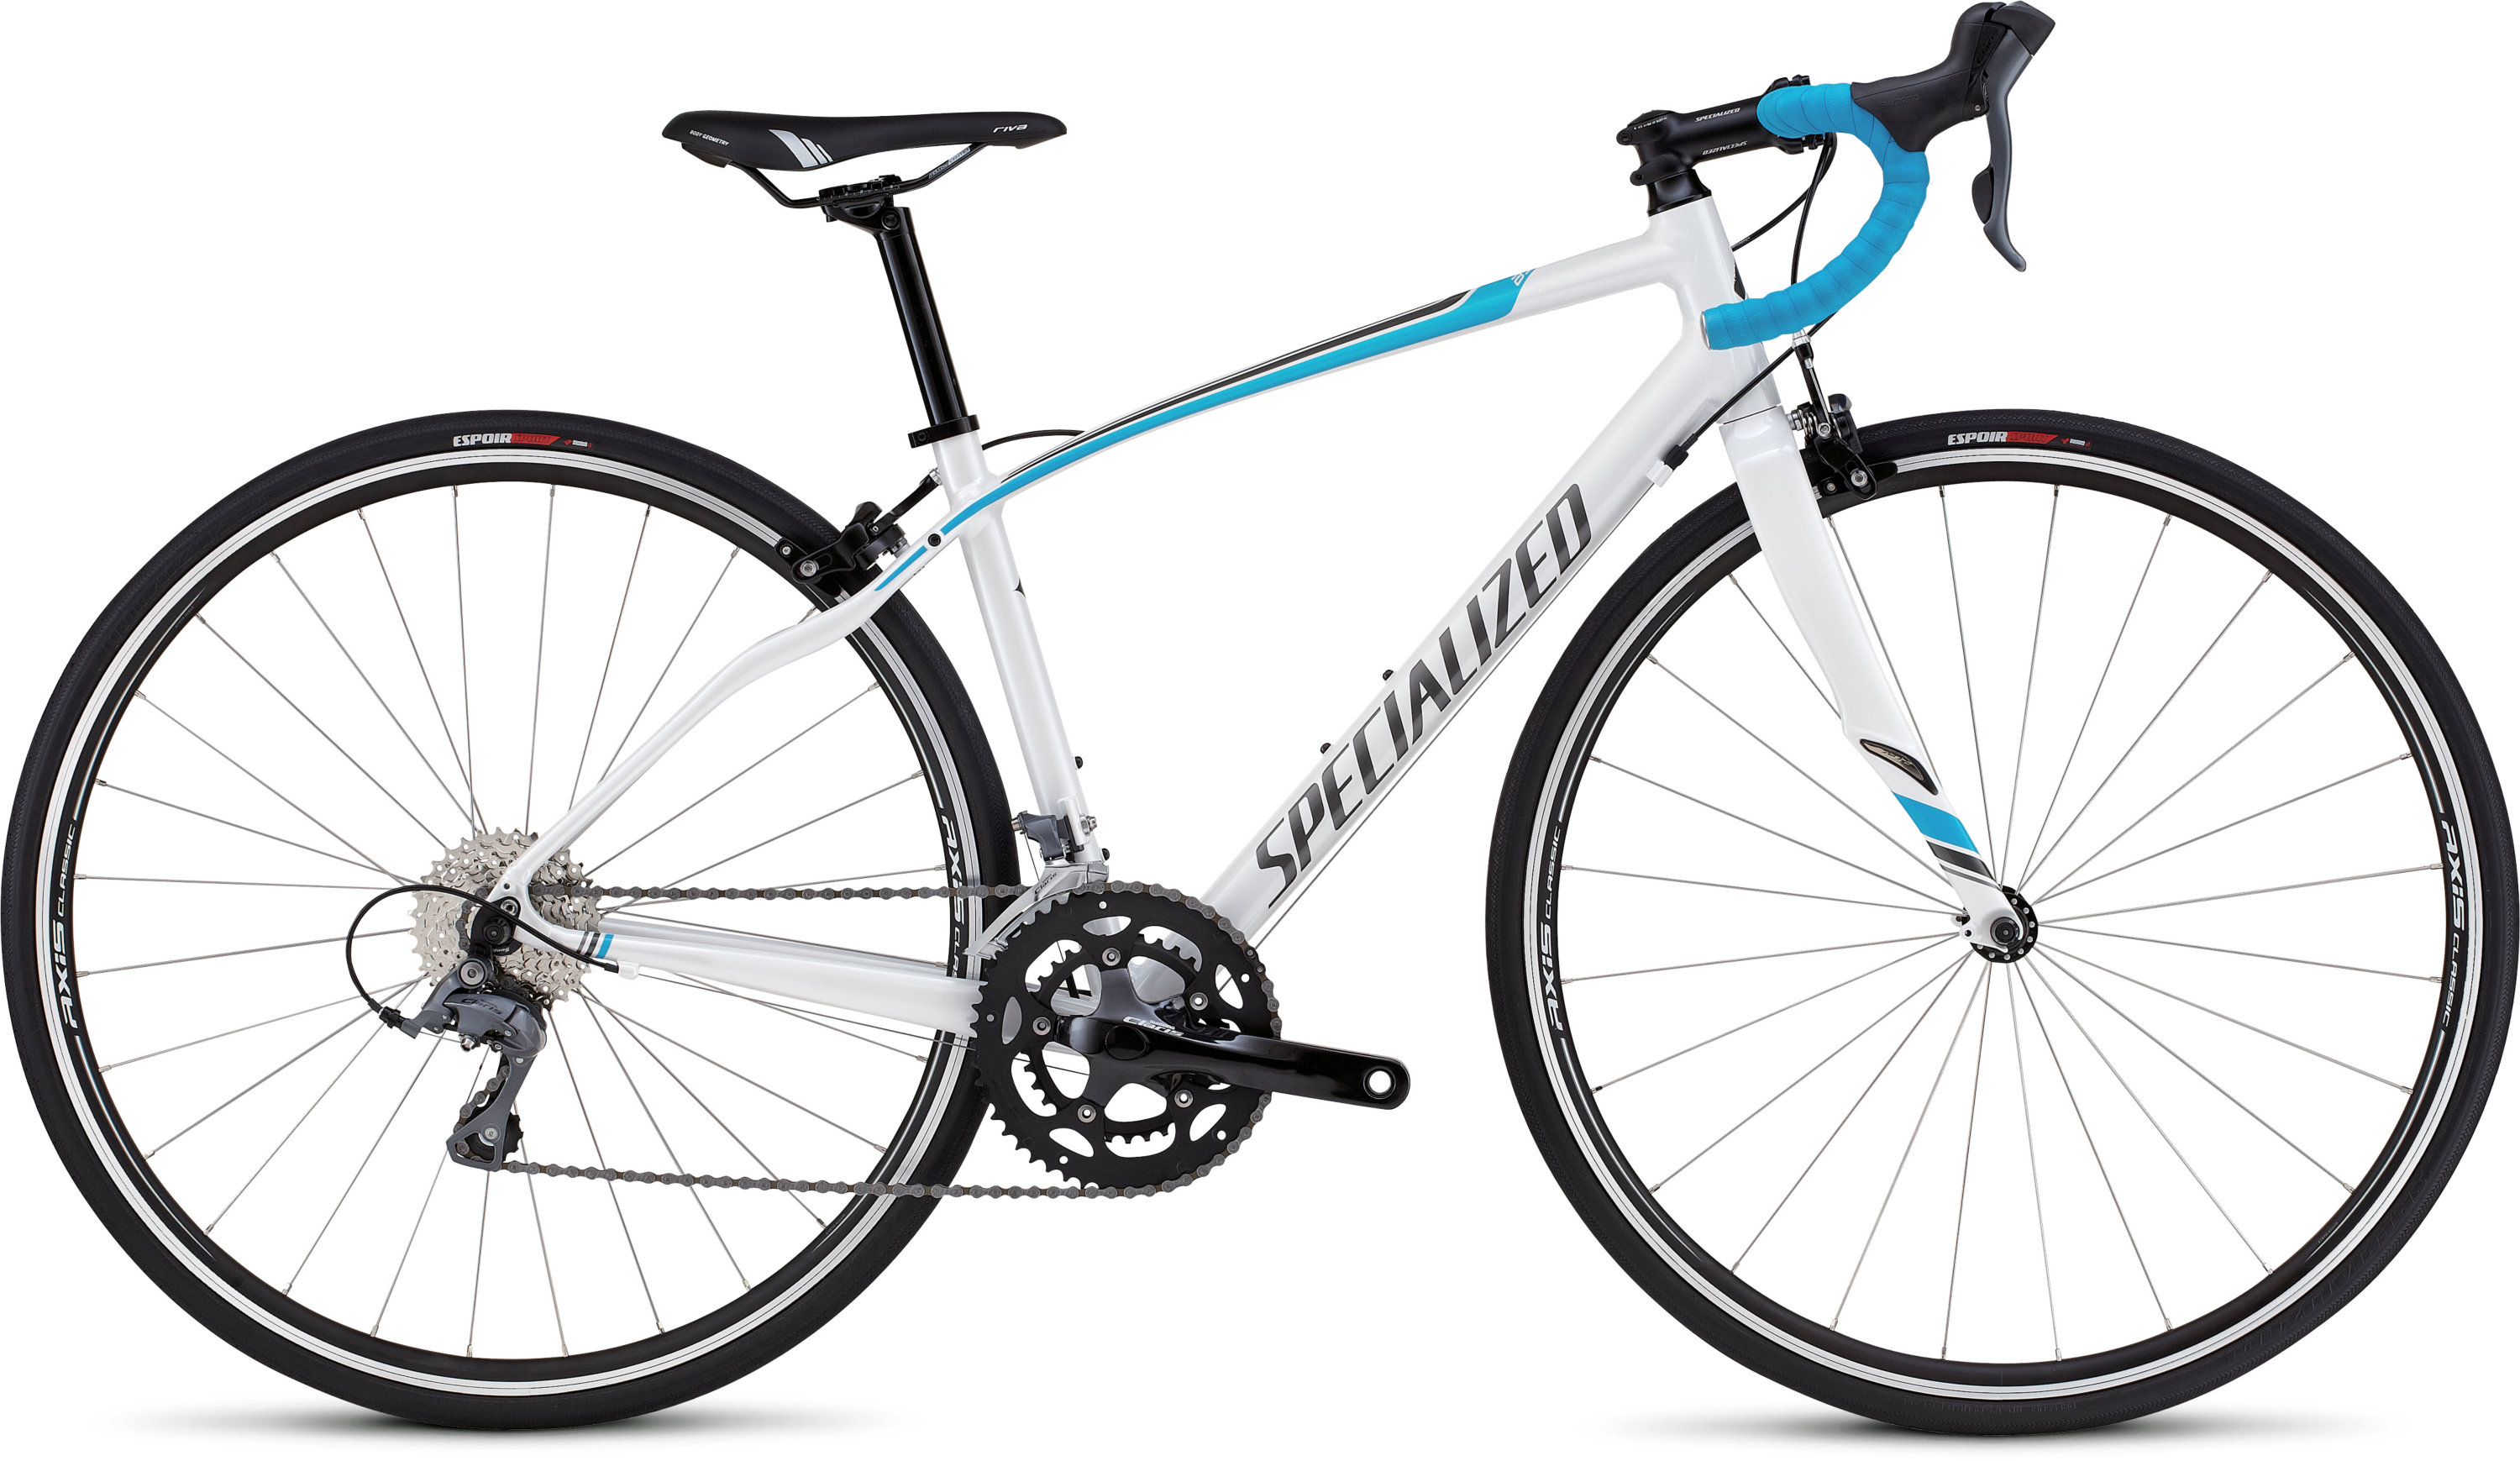 SPECIALIZED DOLCE METWHT/PRLCYAN/SIL 44 - Bikedreams & Dustbikes